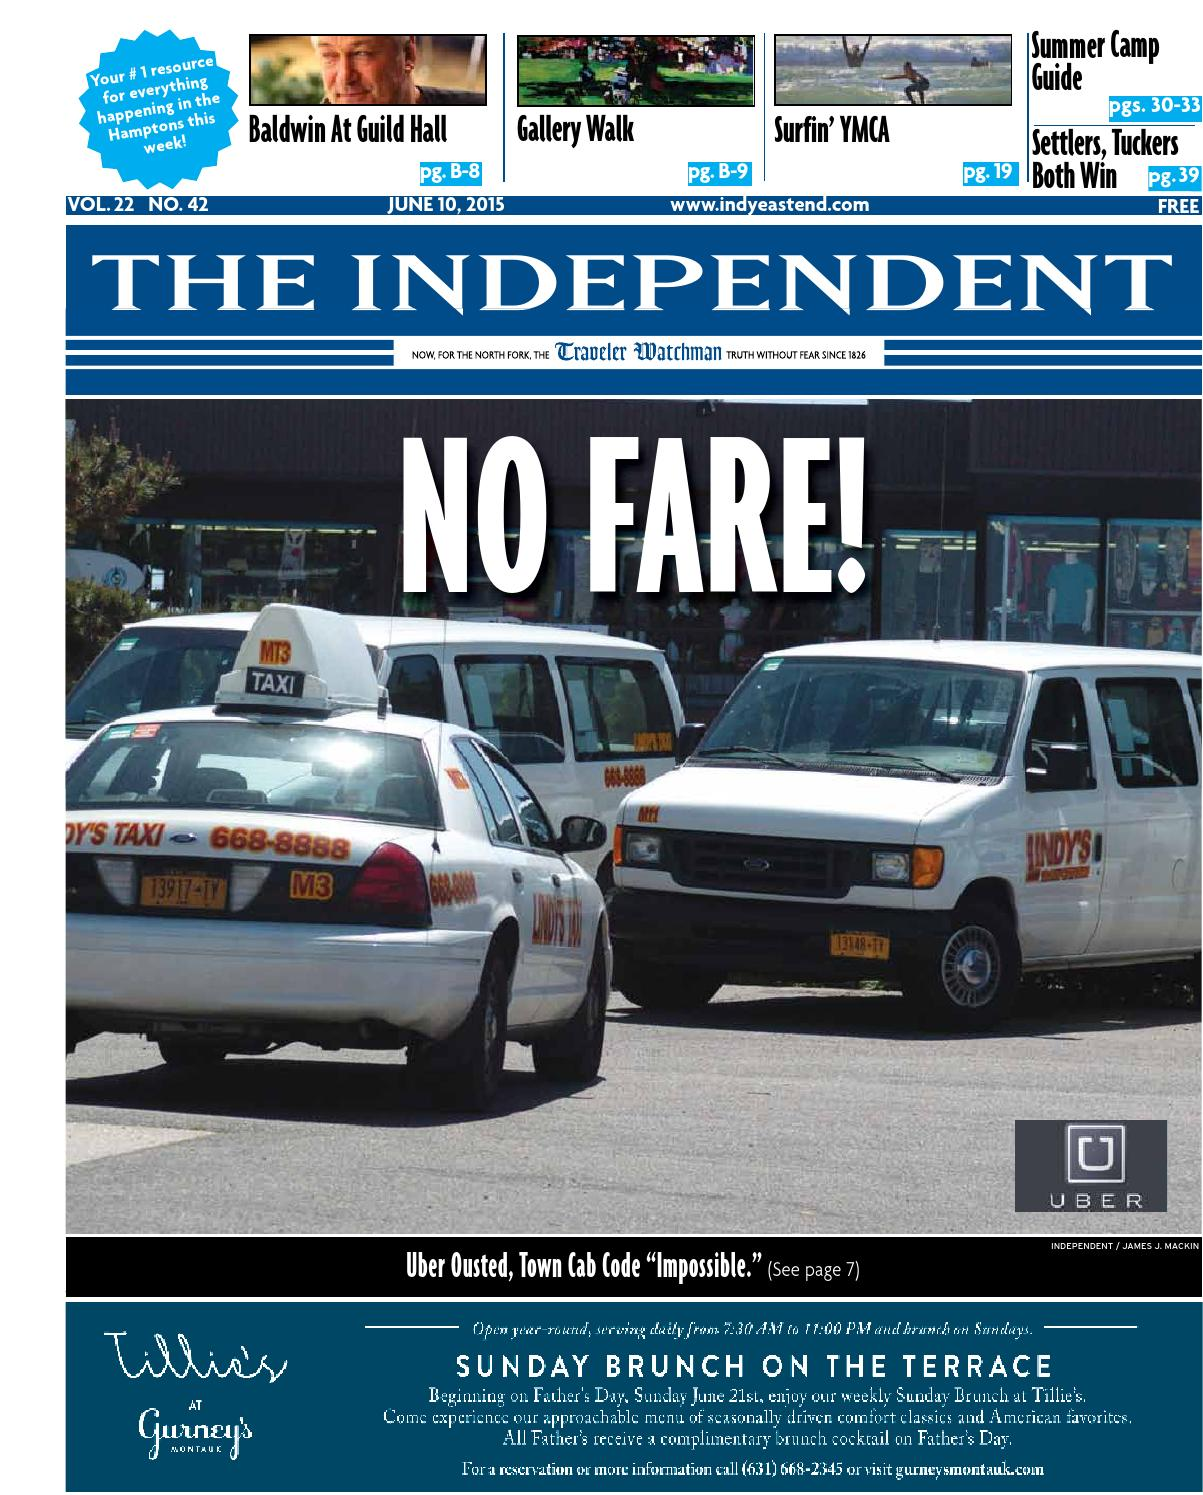 Independent 6-10-15 by The Independent Newspaper - issuu